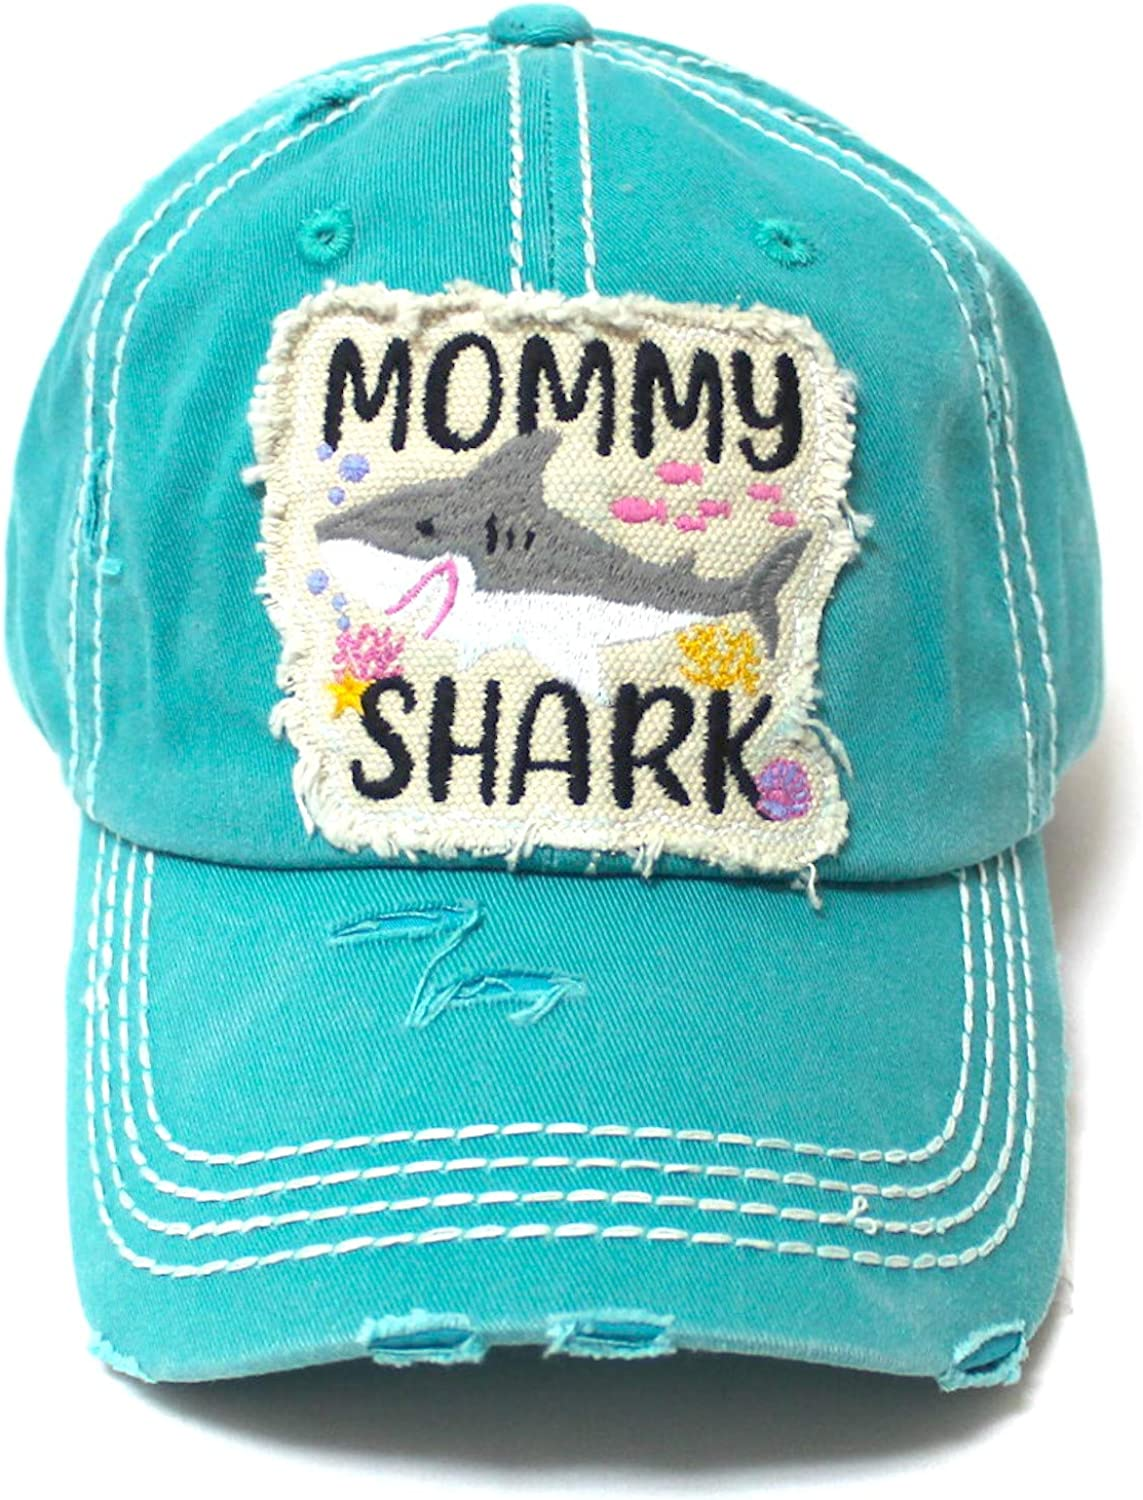 Womens Distressed Adjustable Hat Mommy Shark Patch Embroidery Monogram Ballcap, Seaworld Blue